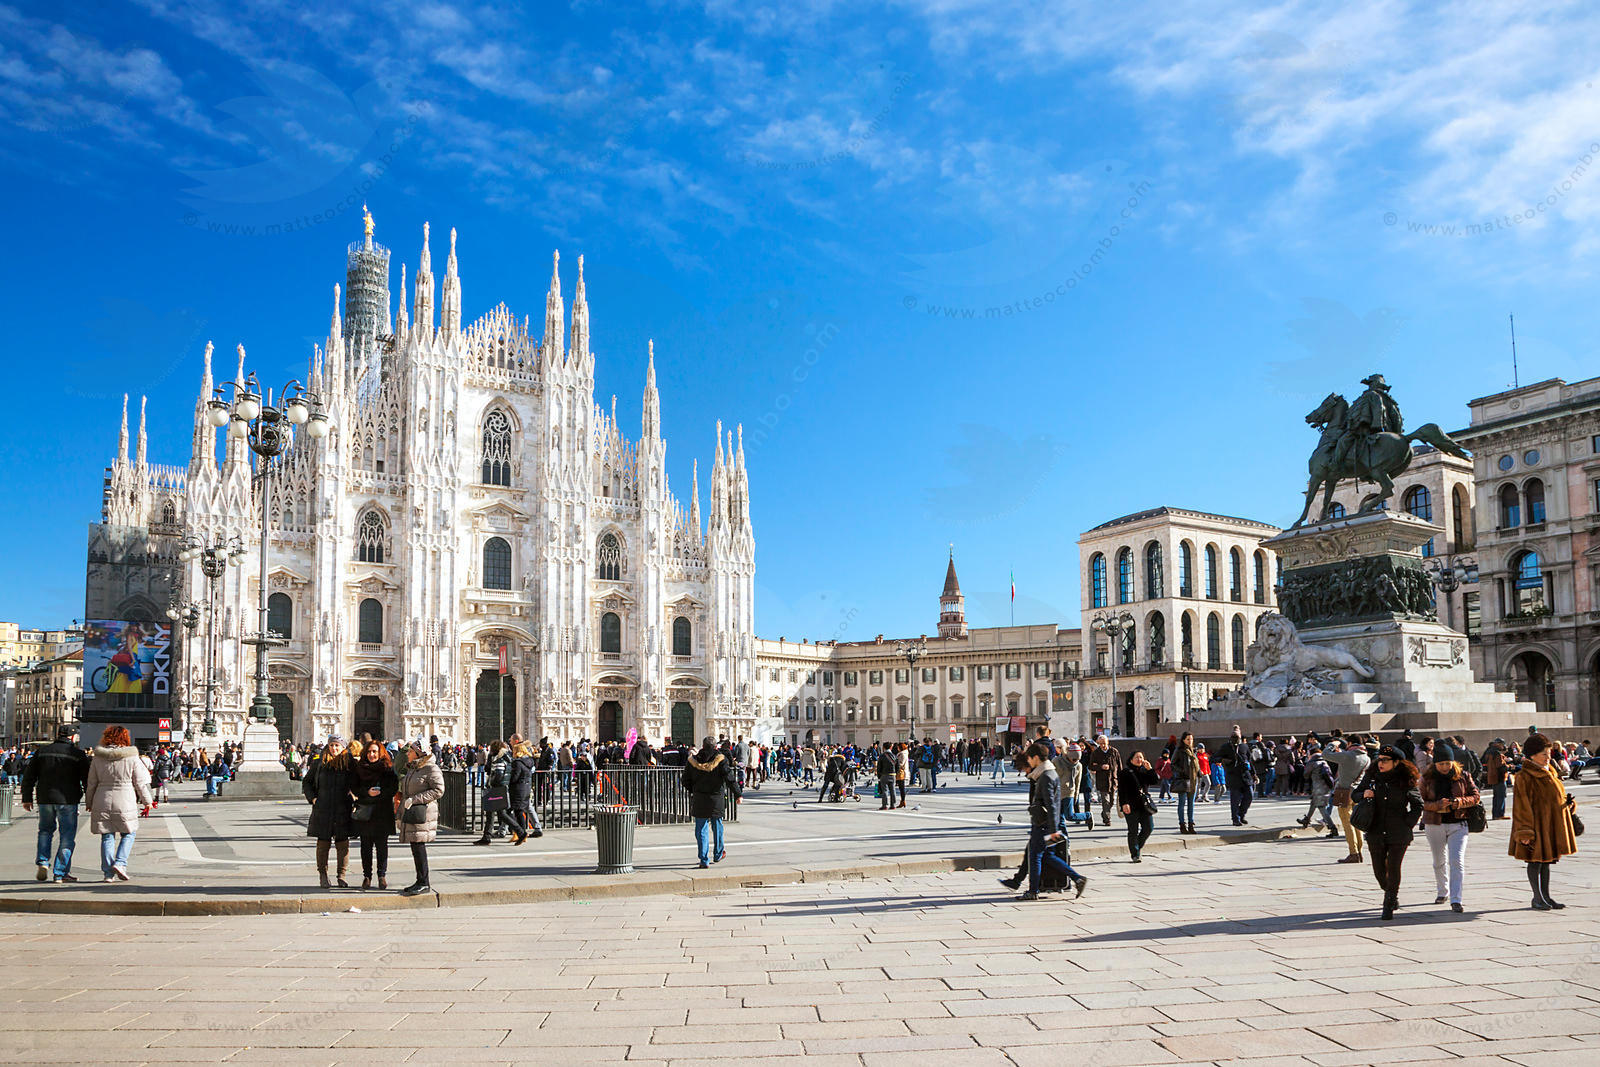 Italy, Lombardy, Milan. View of Piazza del Duomo in the city center